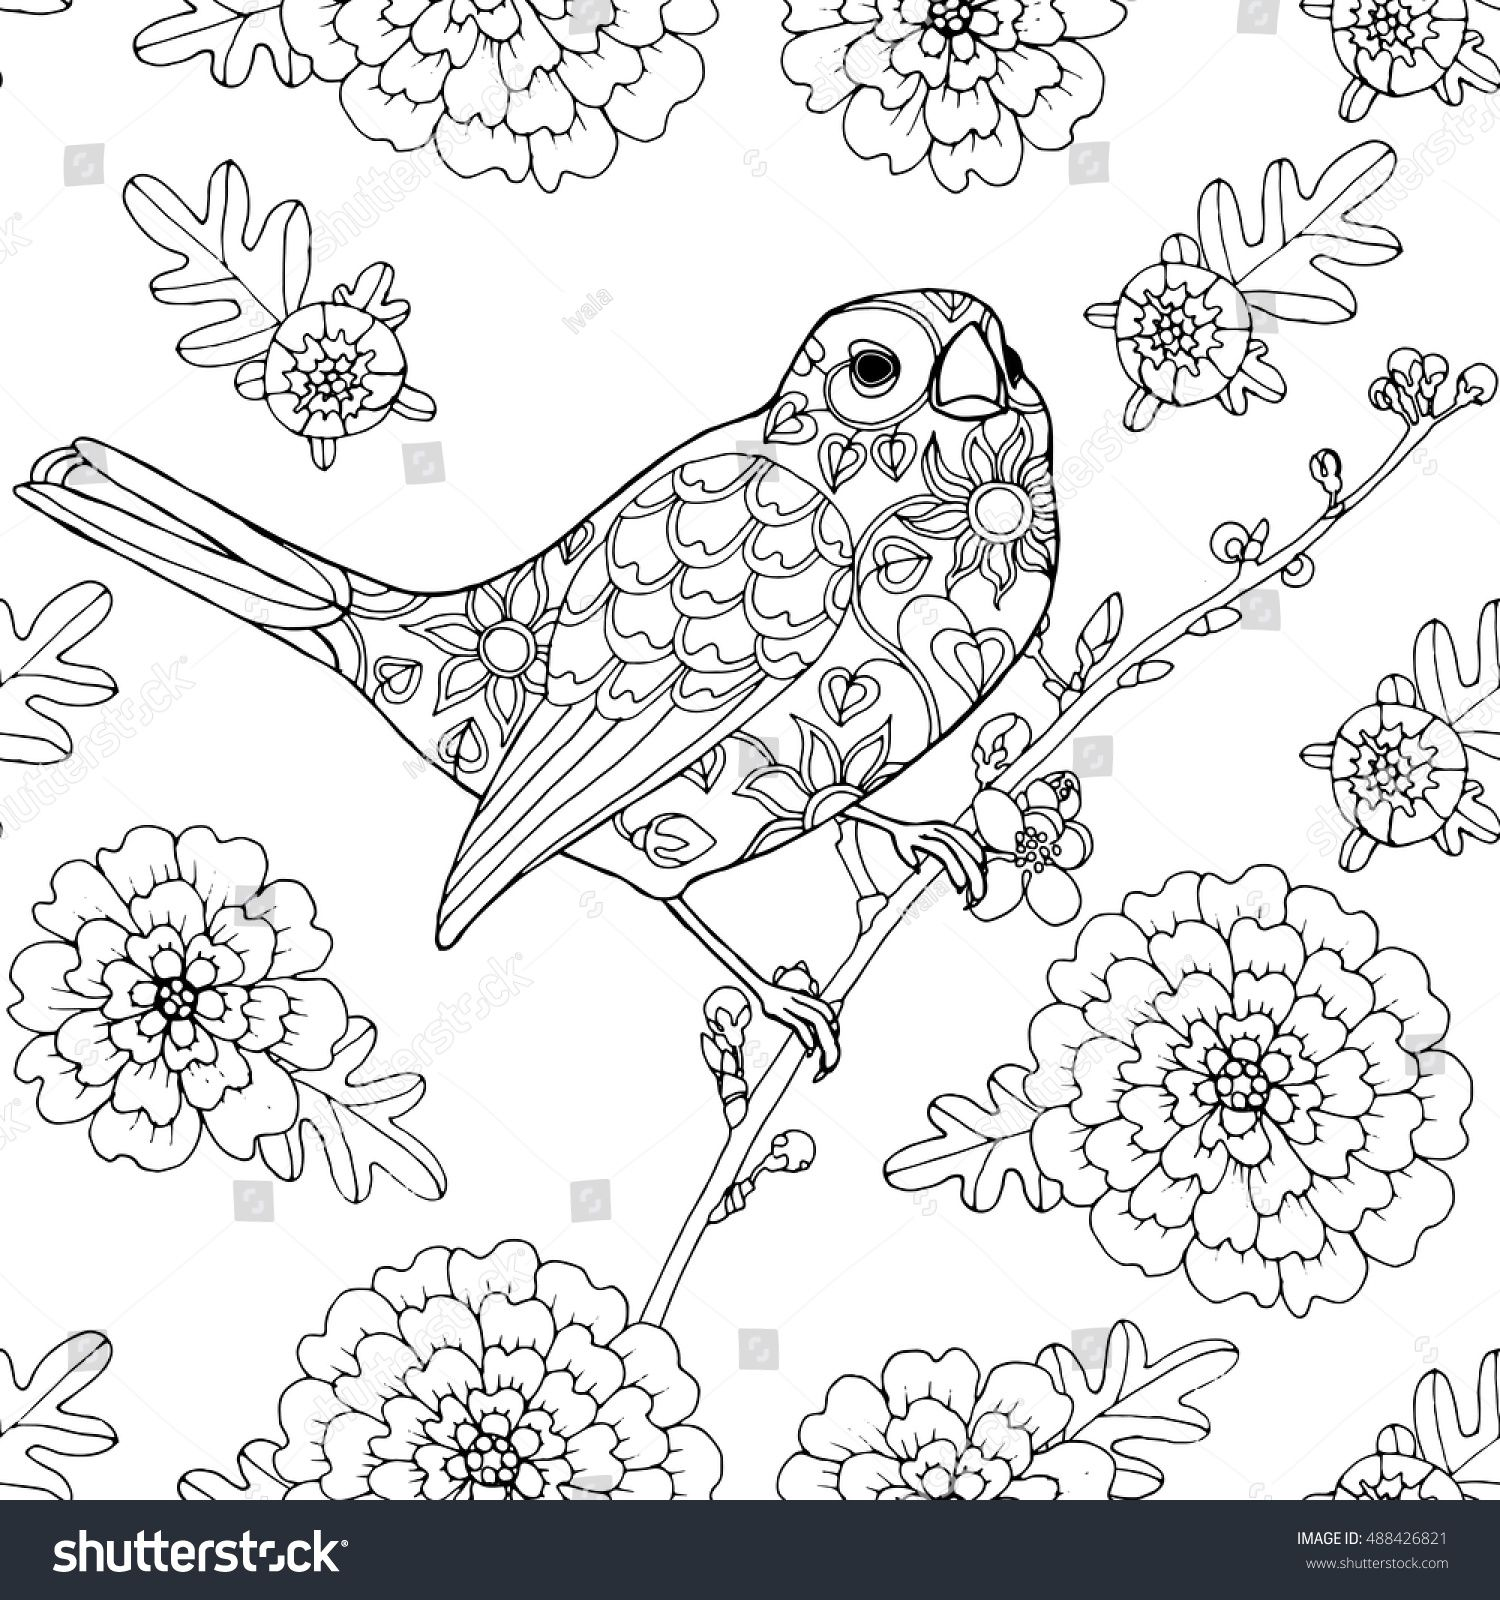 nightingale animal coloring pages. Singing bird  patterned nightingale with marigold flowers seamless pattern page for adult colouring book buy this stock vector on Shutterstock find singing